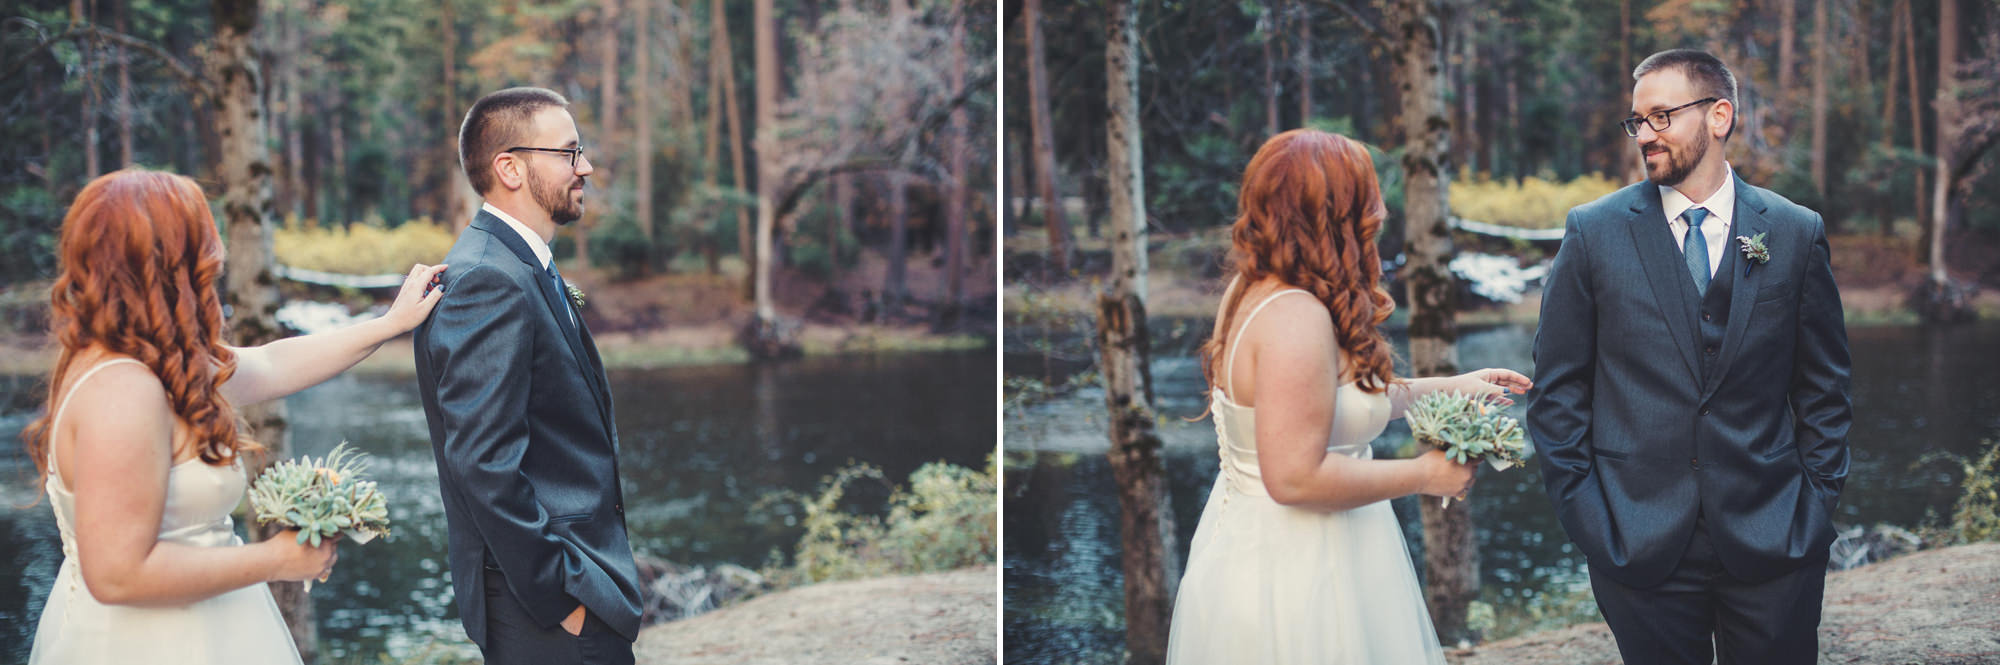 Yosemite wedding ©Anne-Claire Brun 49